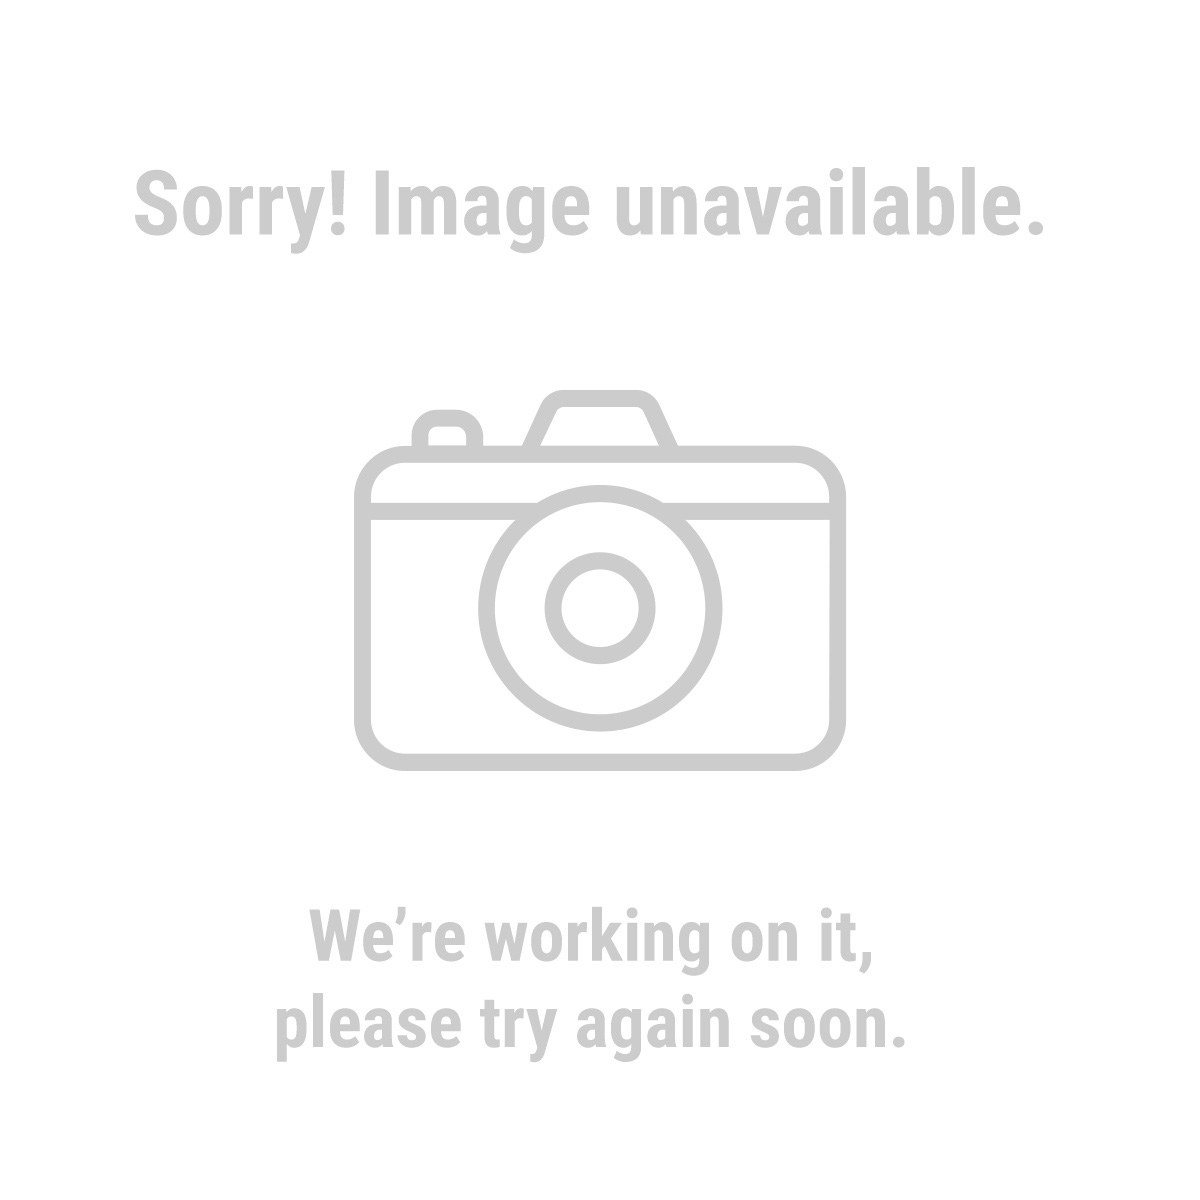 Mover Furniture Dolly For Frame Factory Five Racing Discussion Forum